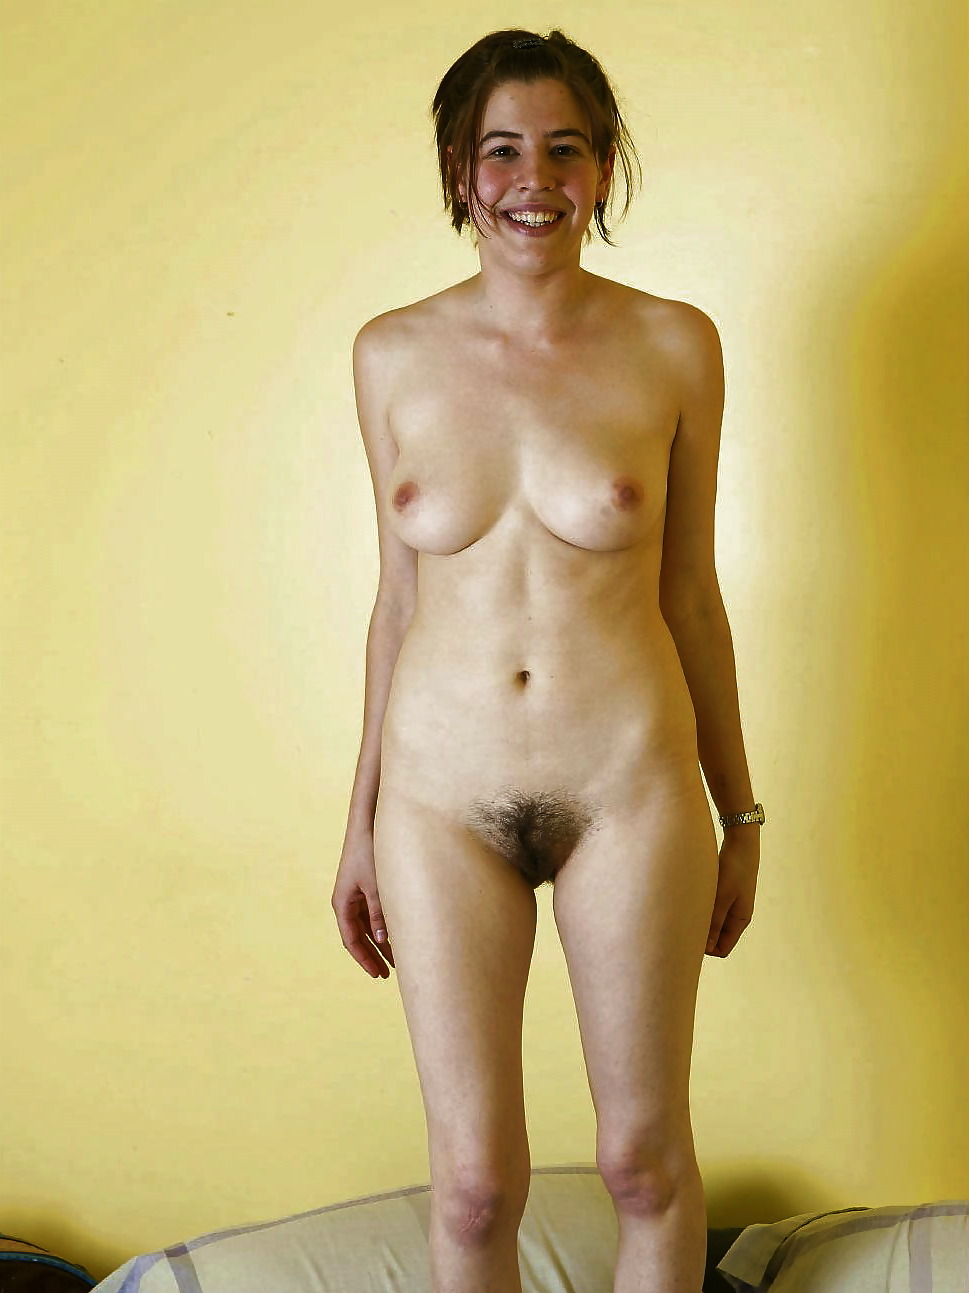 Free pictures of full frontal naked ladies — photo 10